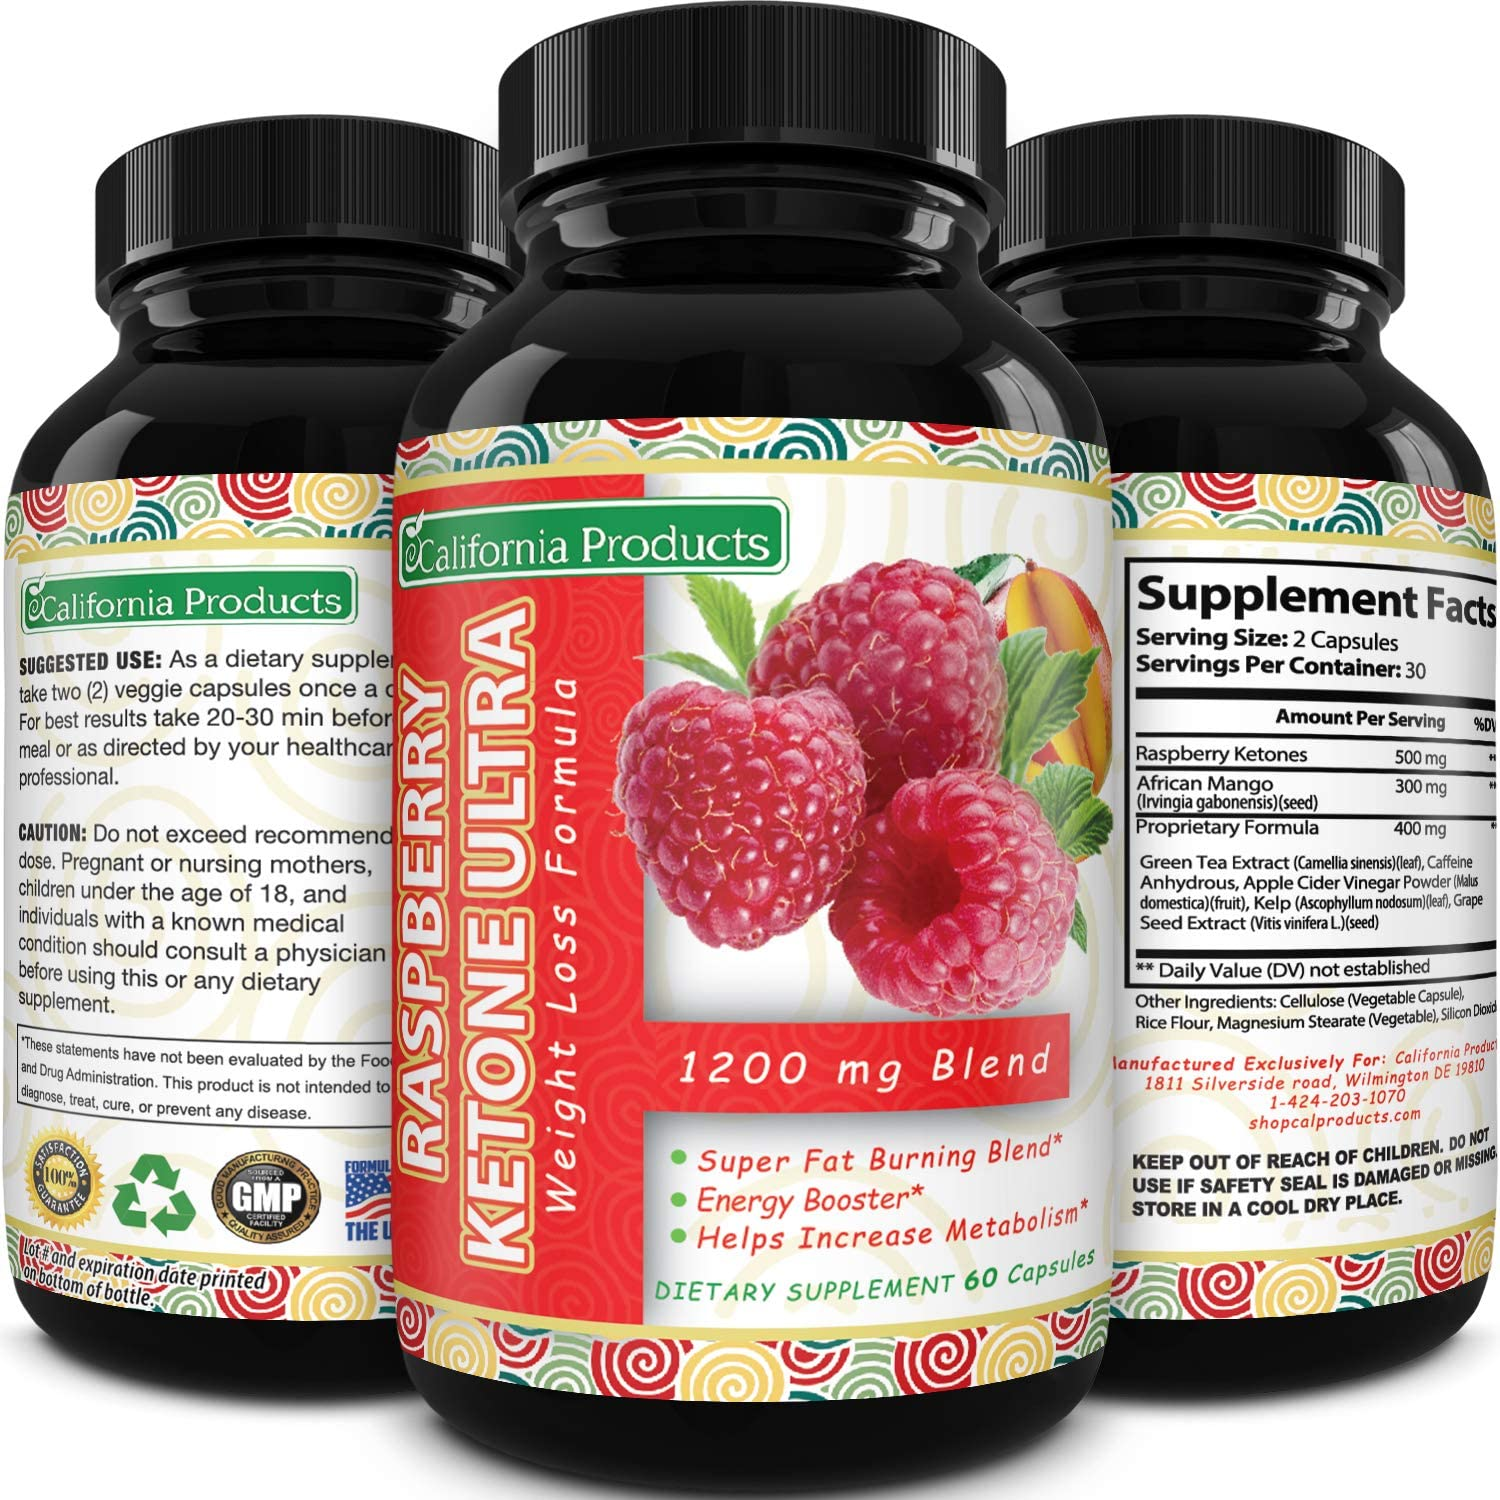 Amazon Com Blend Of Raspberry Ketones Green Tea Extract And African Mango Lose Weight Faster With Natural Ingredients To Speed Up Weight Loss Suppress Appetite